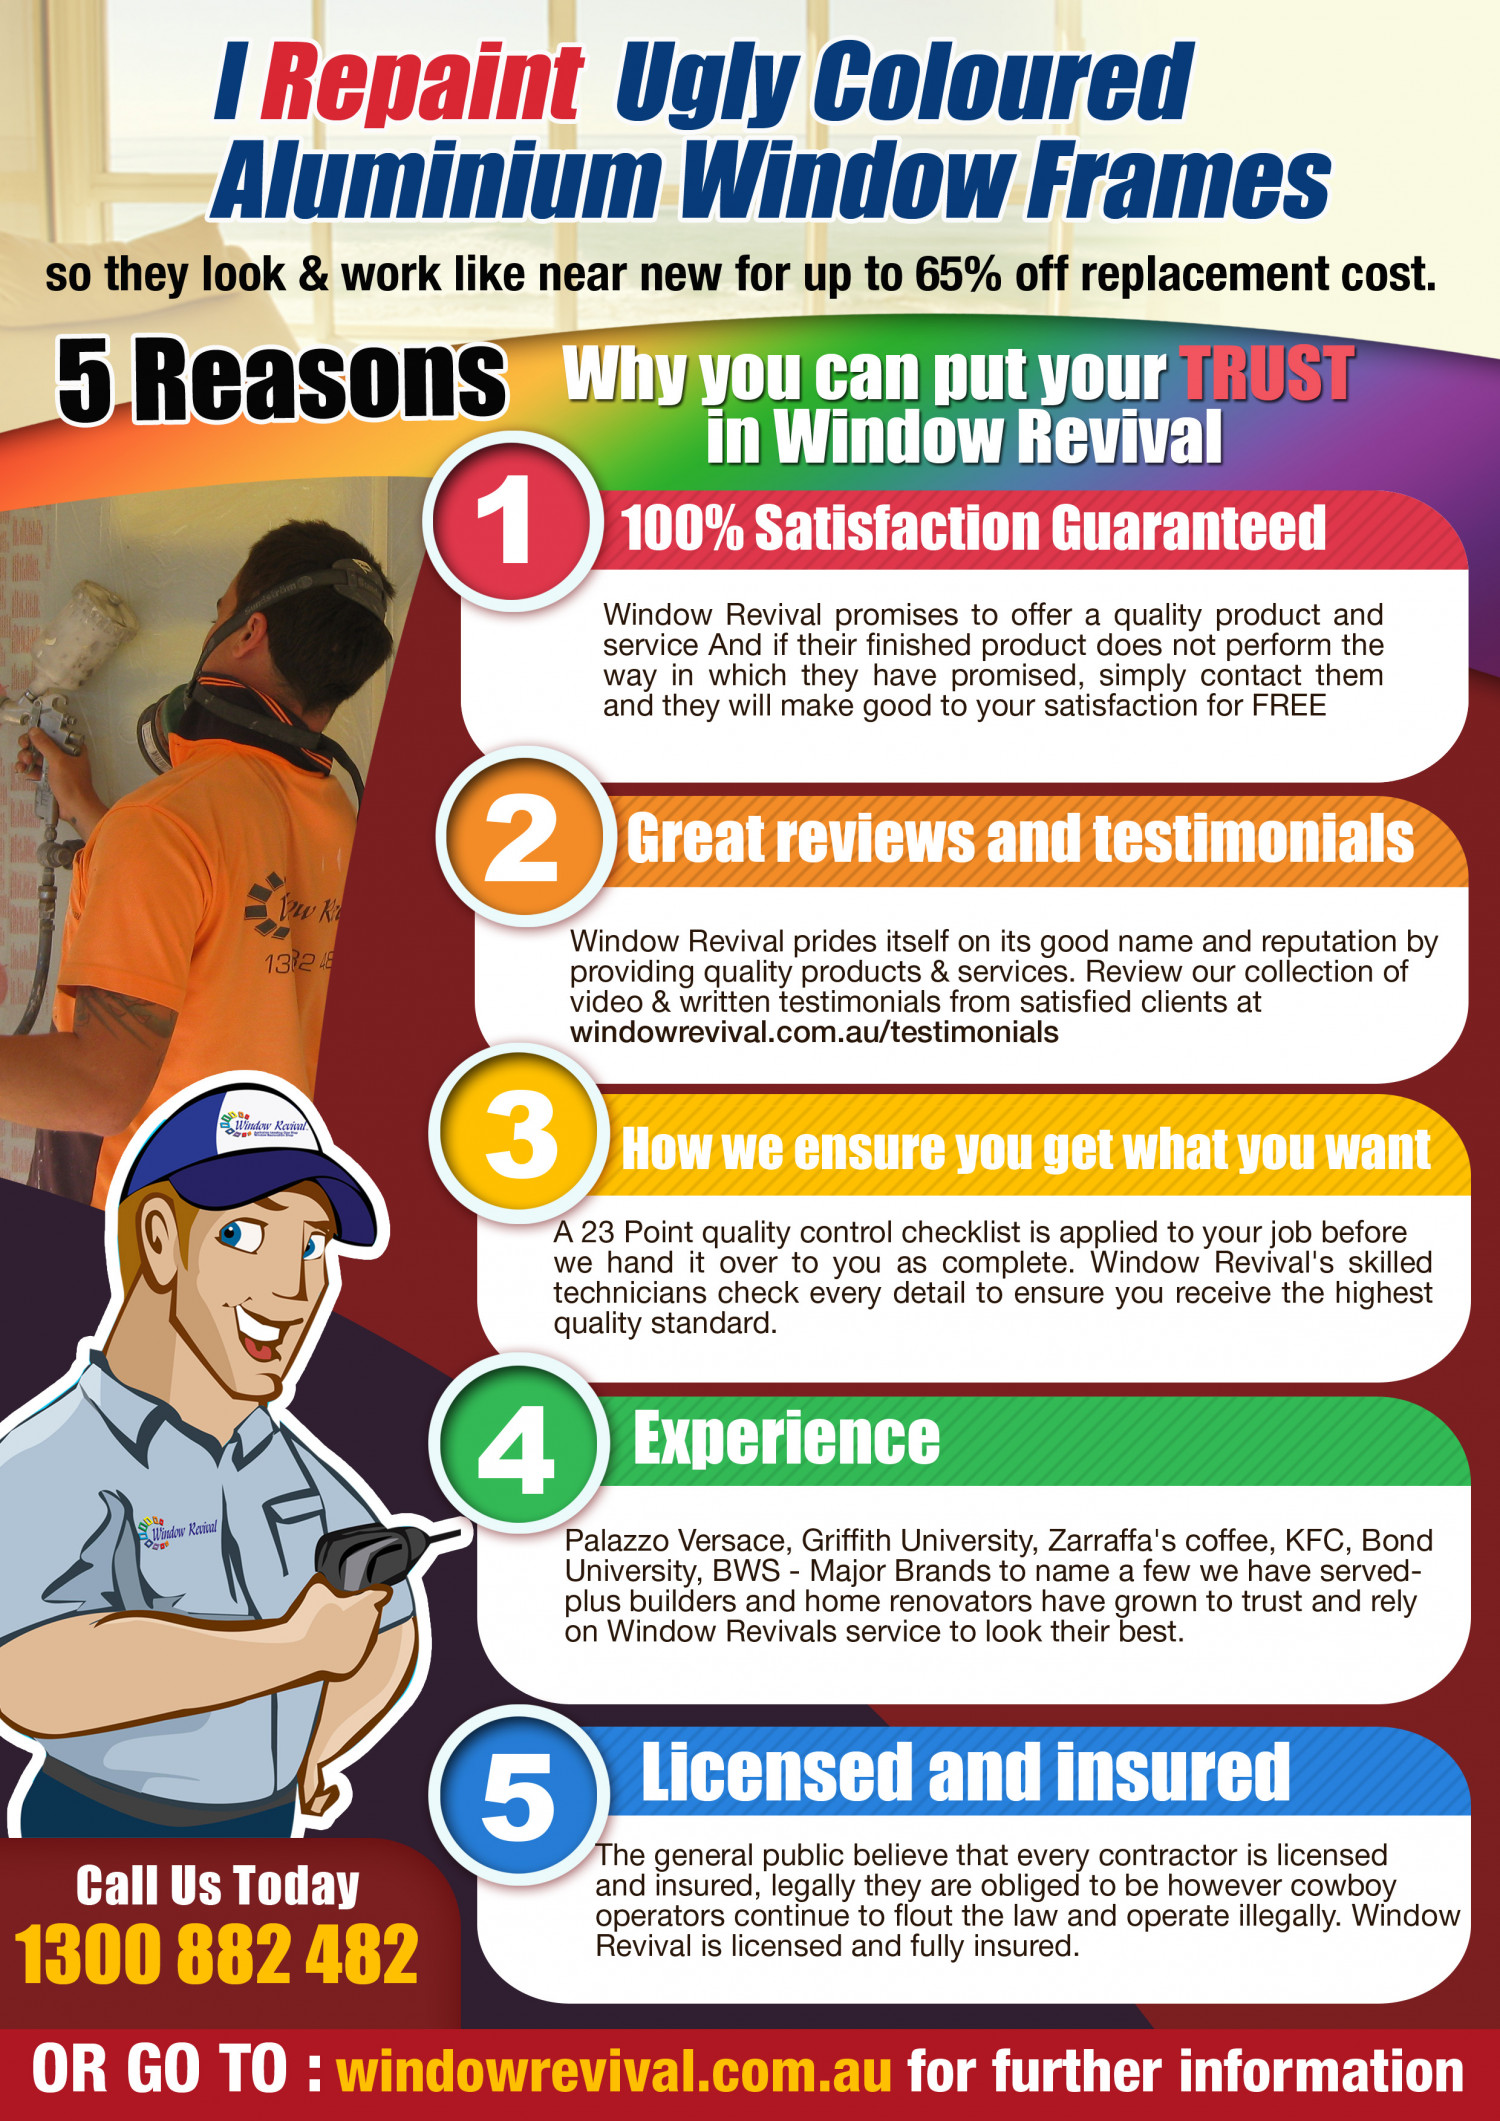 5 Reasons Why You Can Put Your Trust on Window Revival Infographic